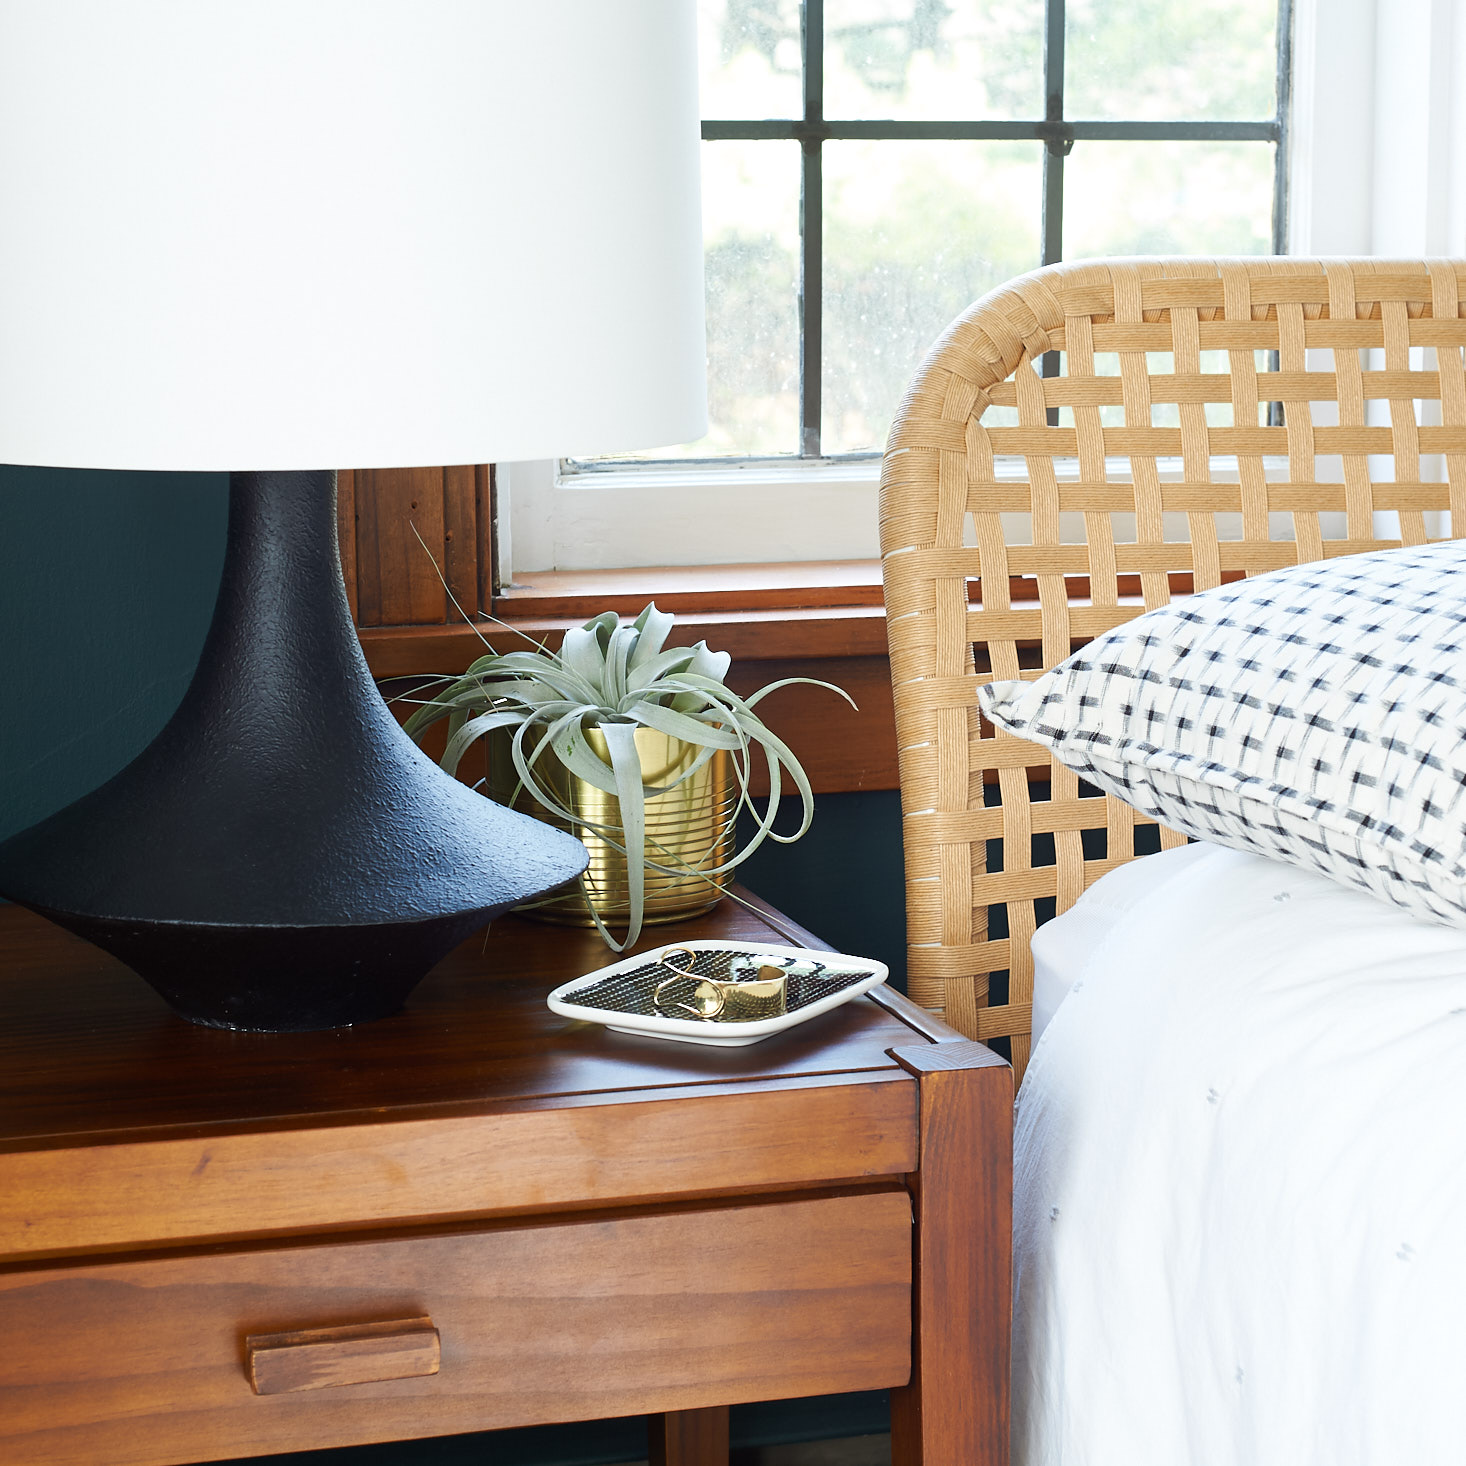 Nightstand with midcentury lamp and rattan headboard